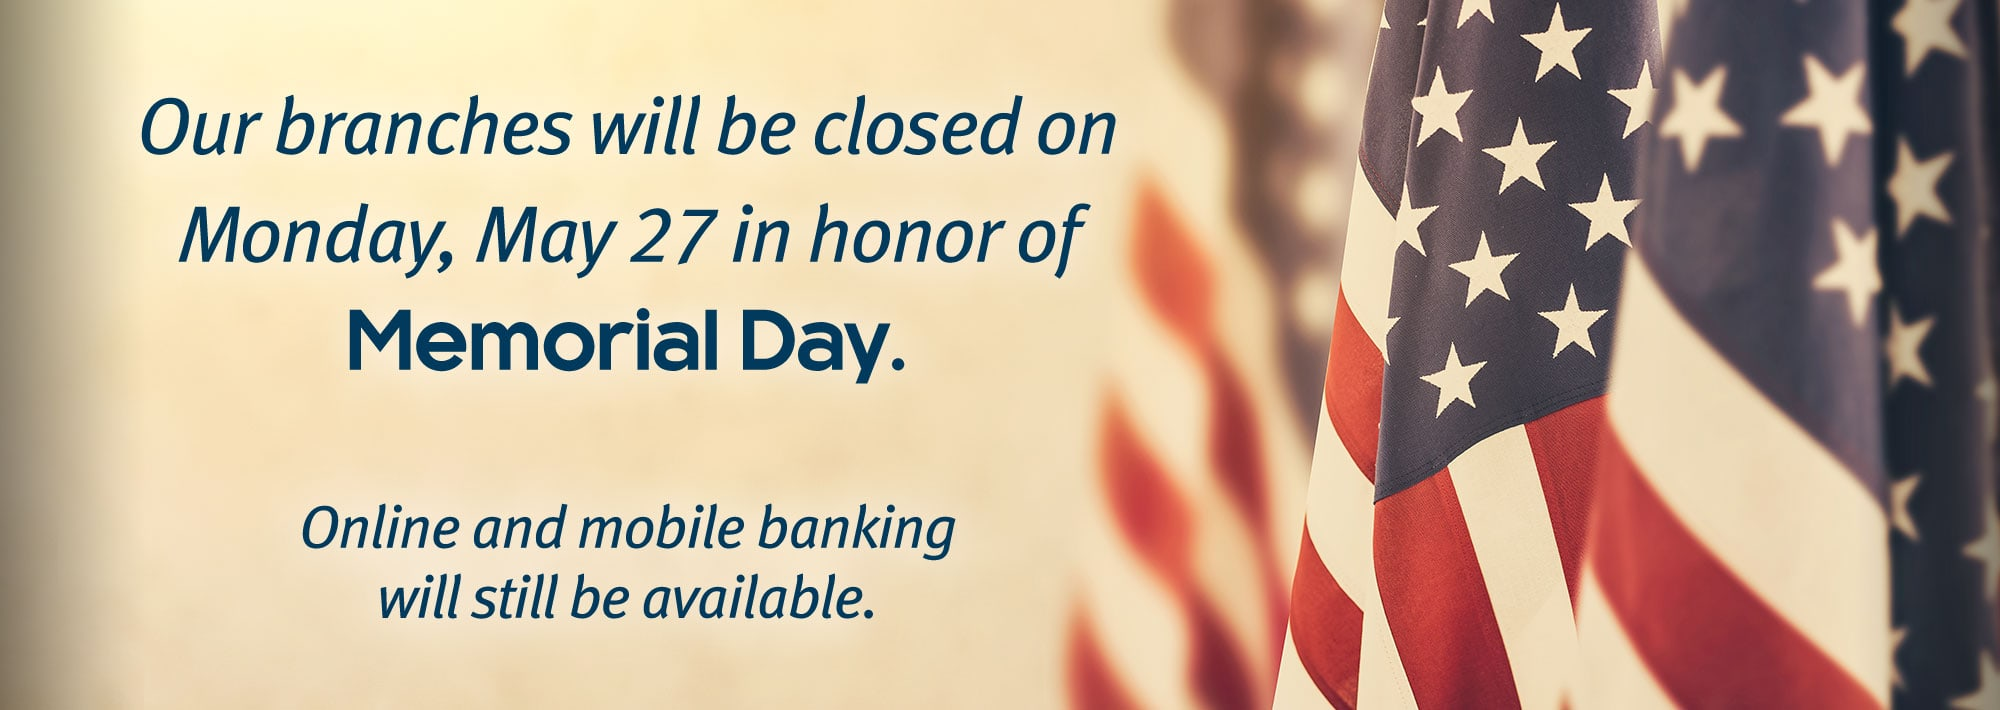 our branches will be closed Monday, May 27, in honor of Memorial Day. Online and mobile banking will still be available.